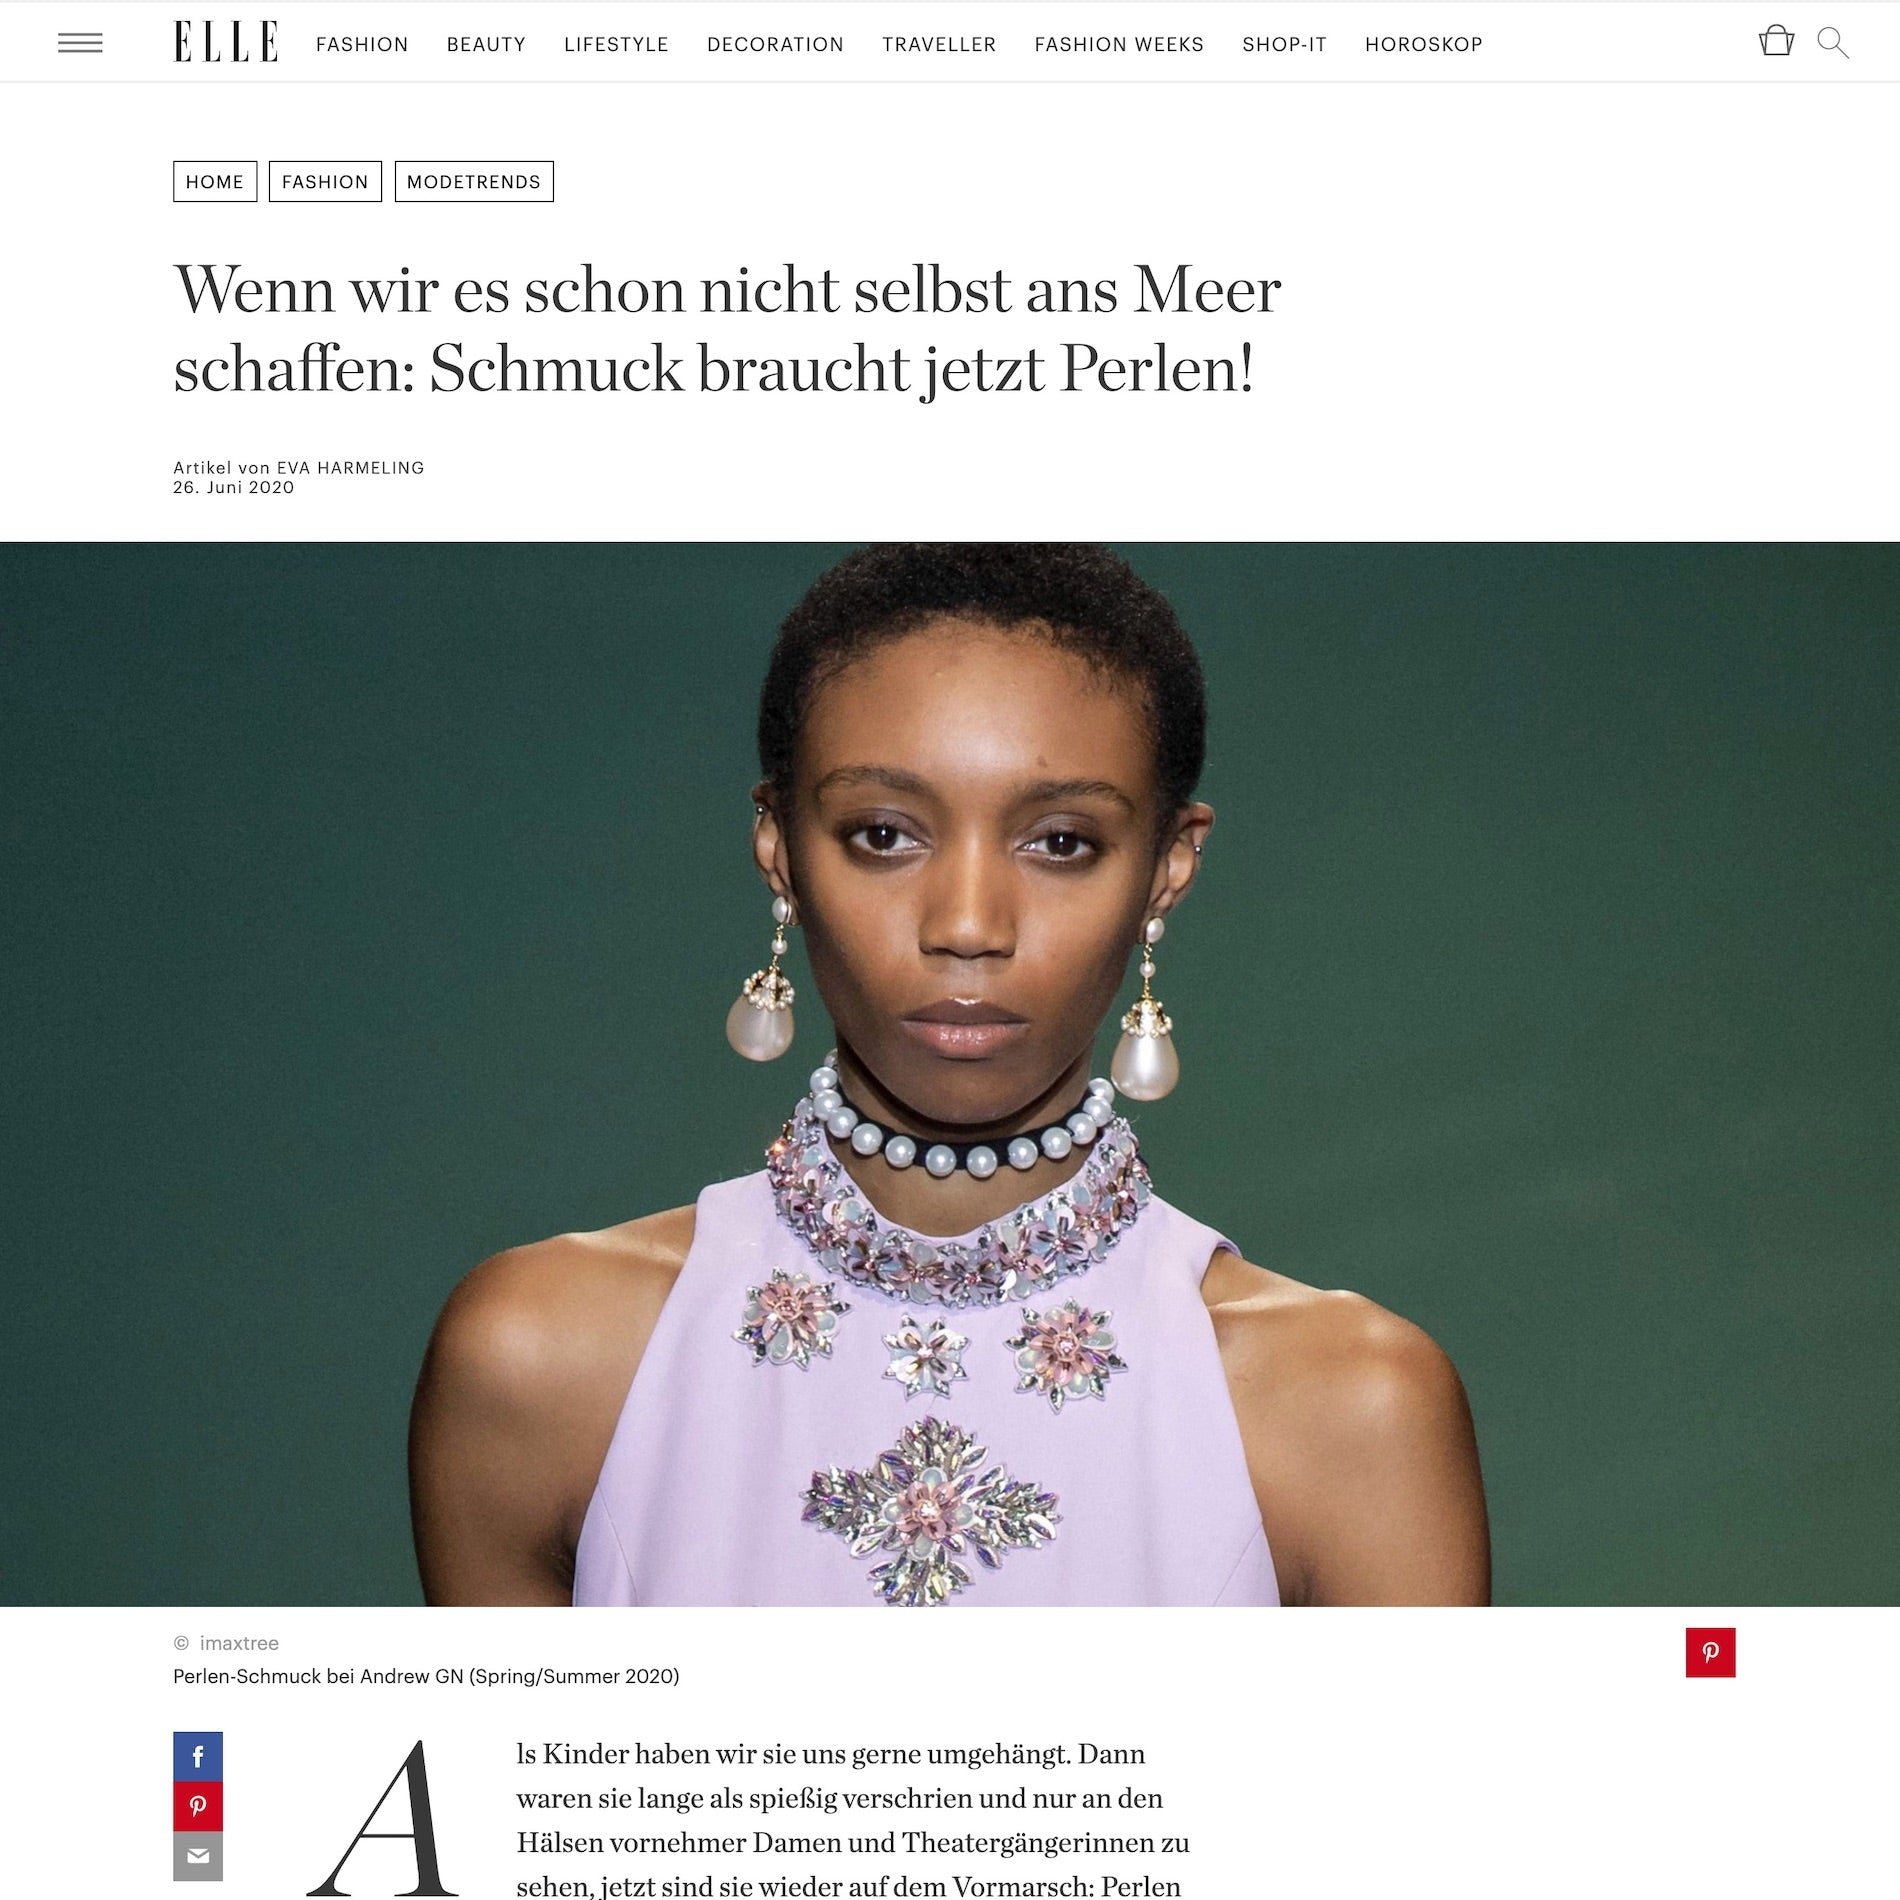 Elle Germany: Mermaid Stories jewelry is featured in this article about pearl trends